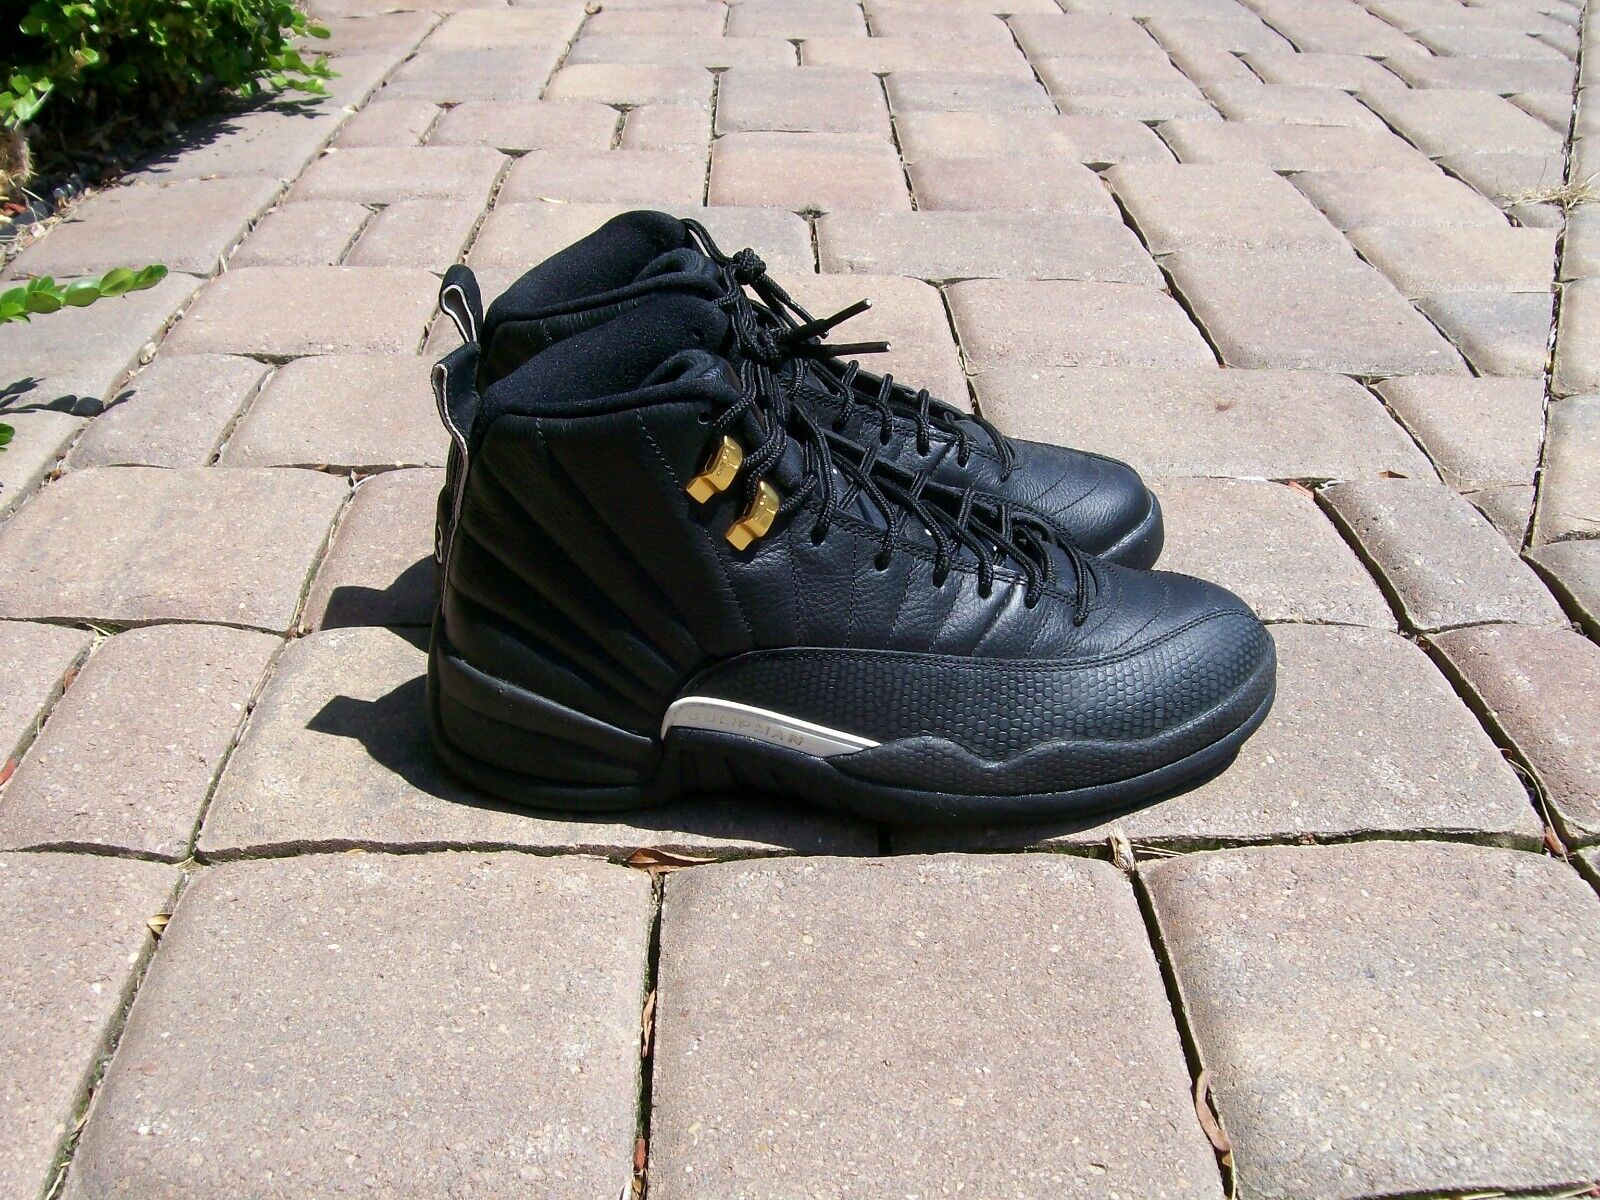 the latest 91490 e7d3a ... THE MASTER 130690-013 Flu Game Taxi Playoff Cherry NIKE AIR JORDAN 12  XII RETRO THE MASTER 130690-013 Flu Game Taxi Playoff Cherry NIKE AIR  JORDAN 12 ...